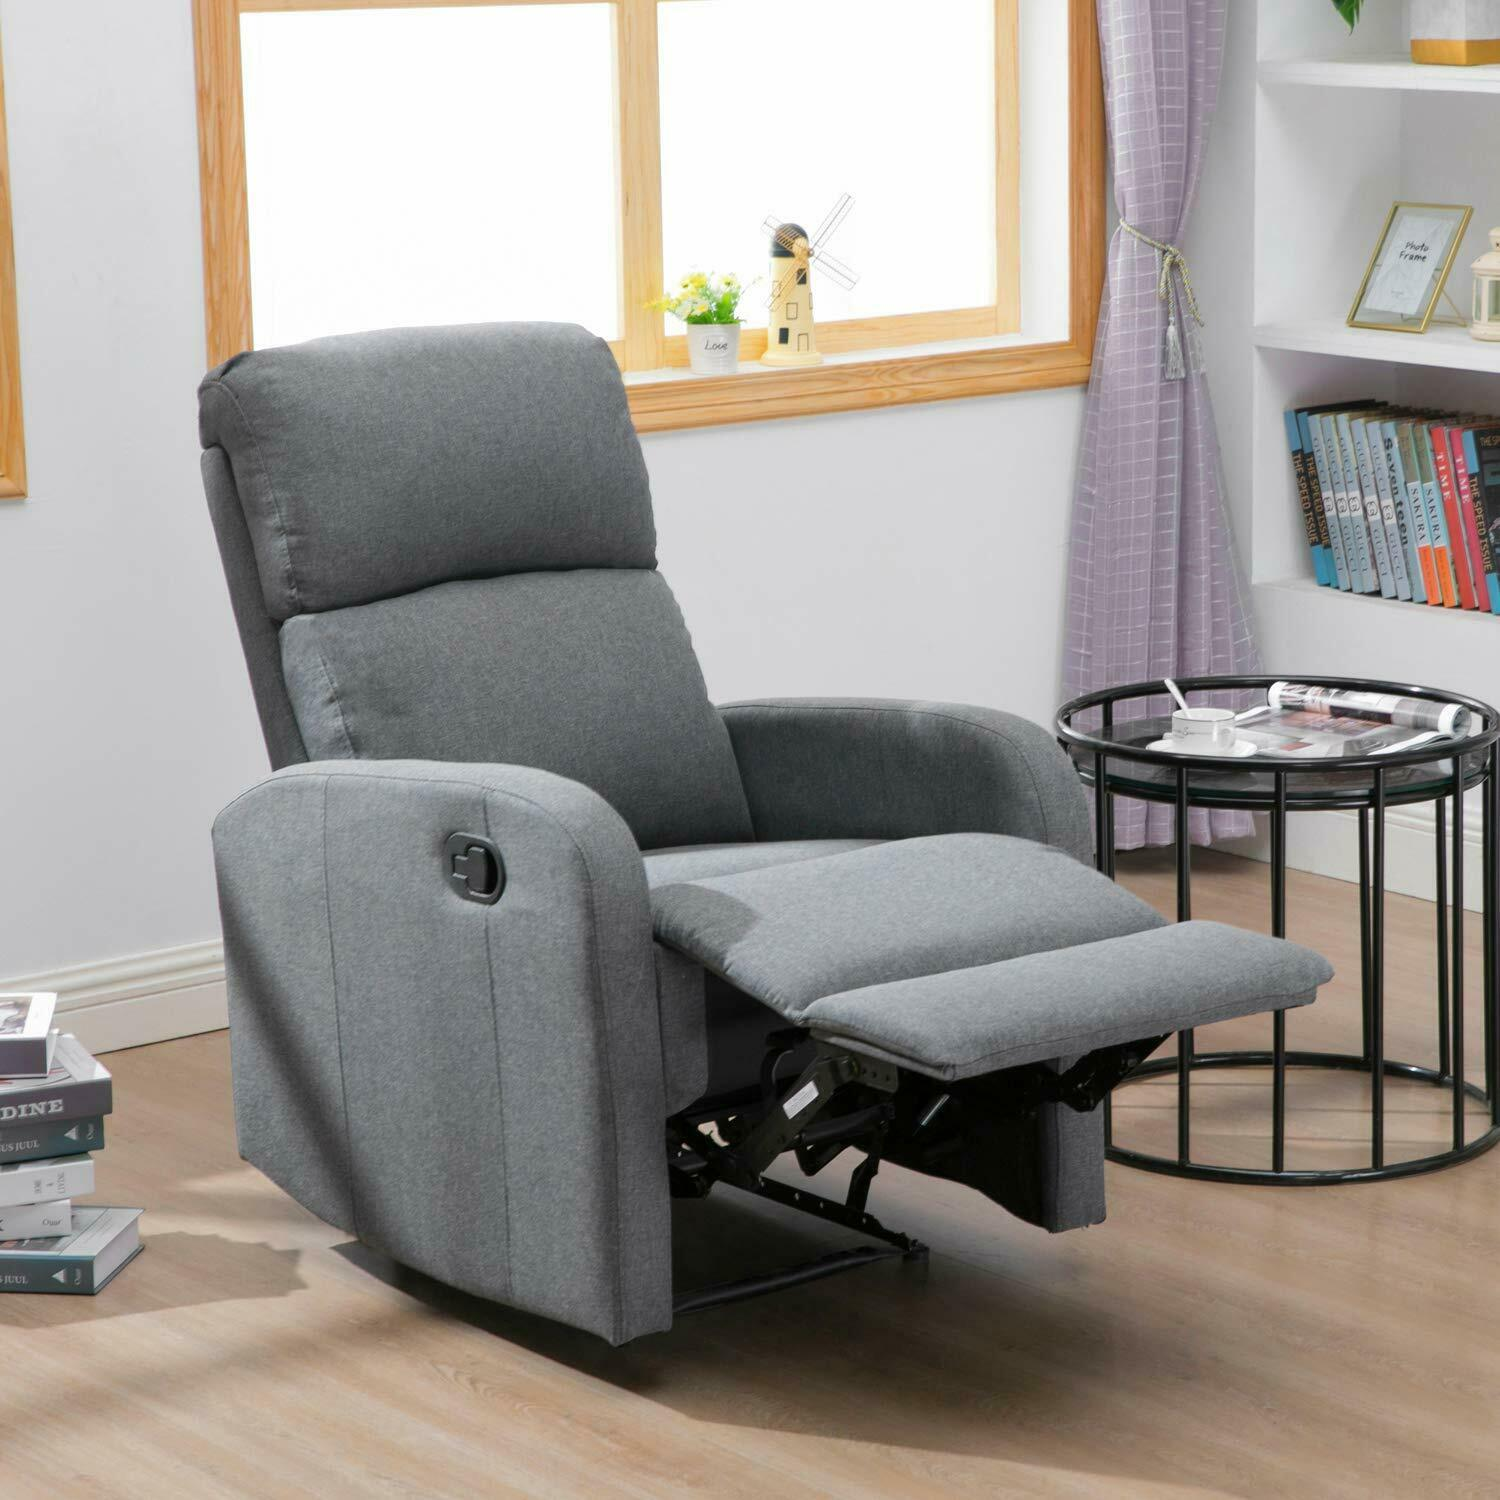 Single Sofa Recliner Chair Fabric Reclining Seat Living Room